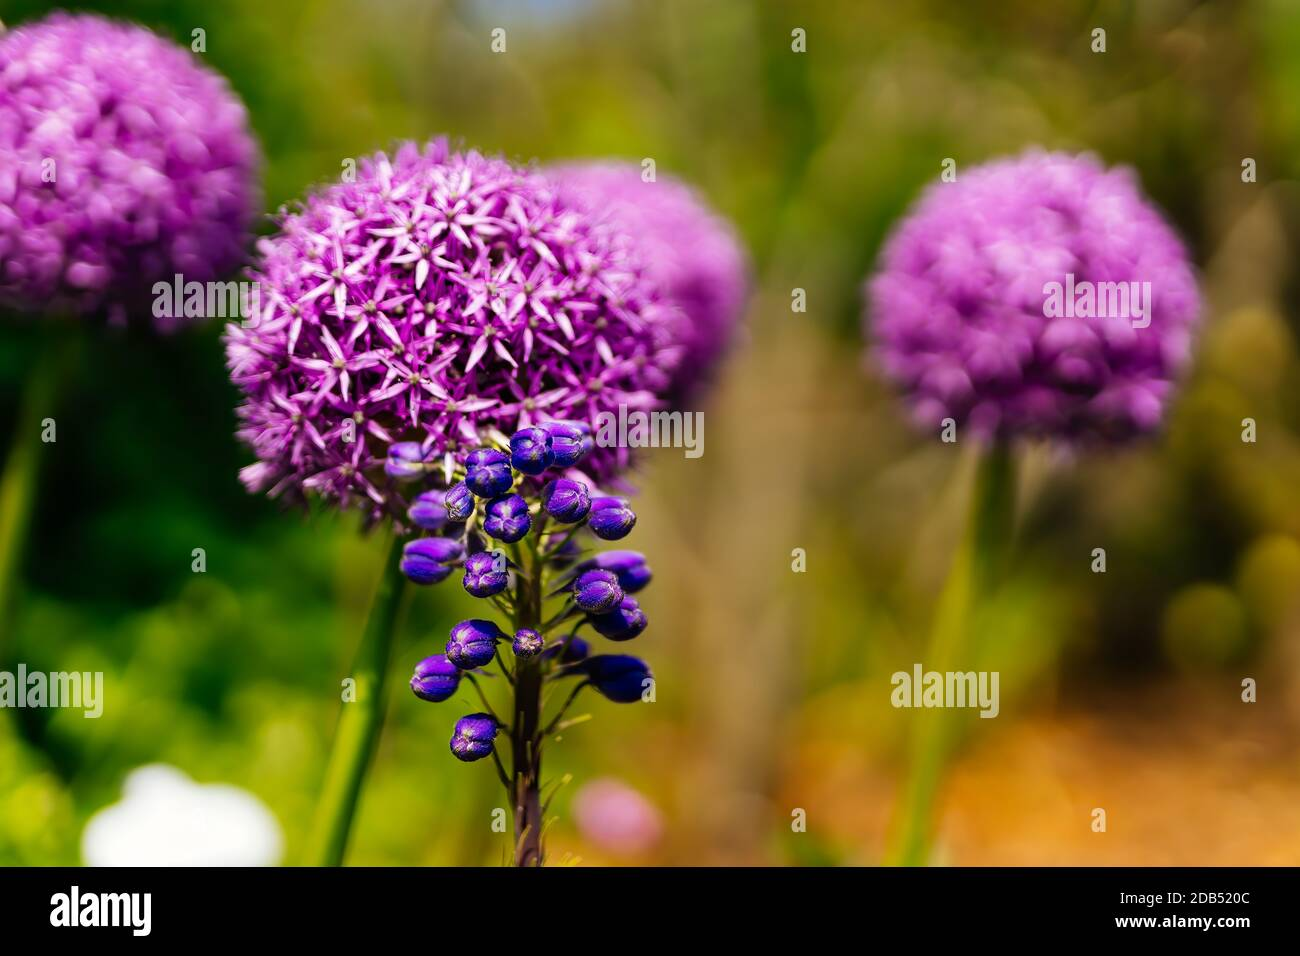 Selective focus on beautiful, blooming Allium Vienale and Grape Hyacinth, Muscari Latifolium, flowers on colourful blurred background, springtime Stock Photo